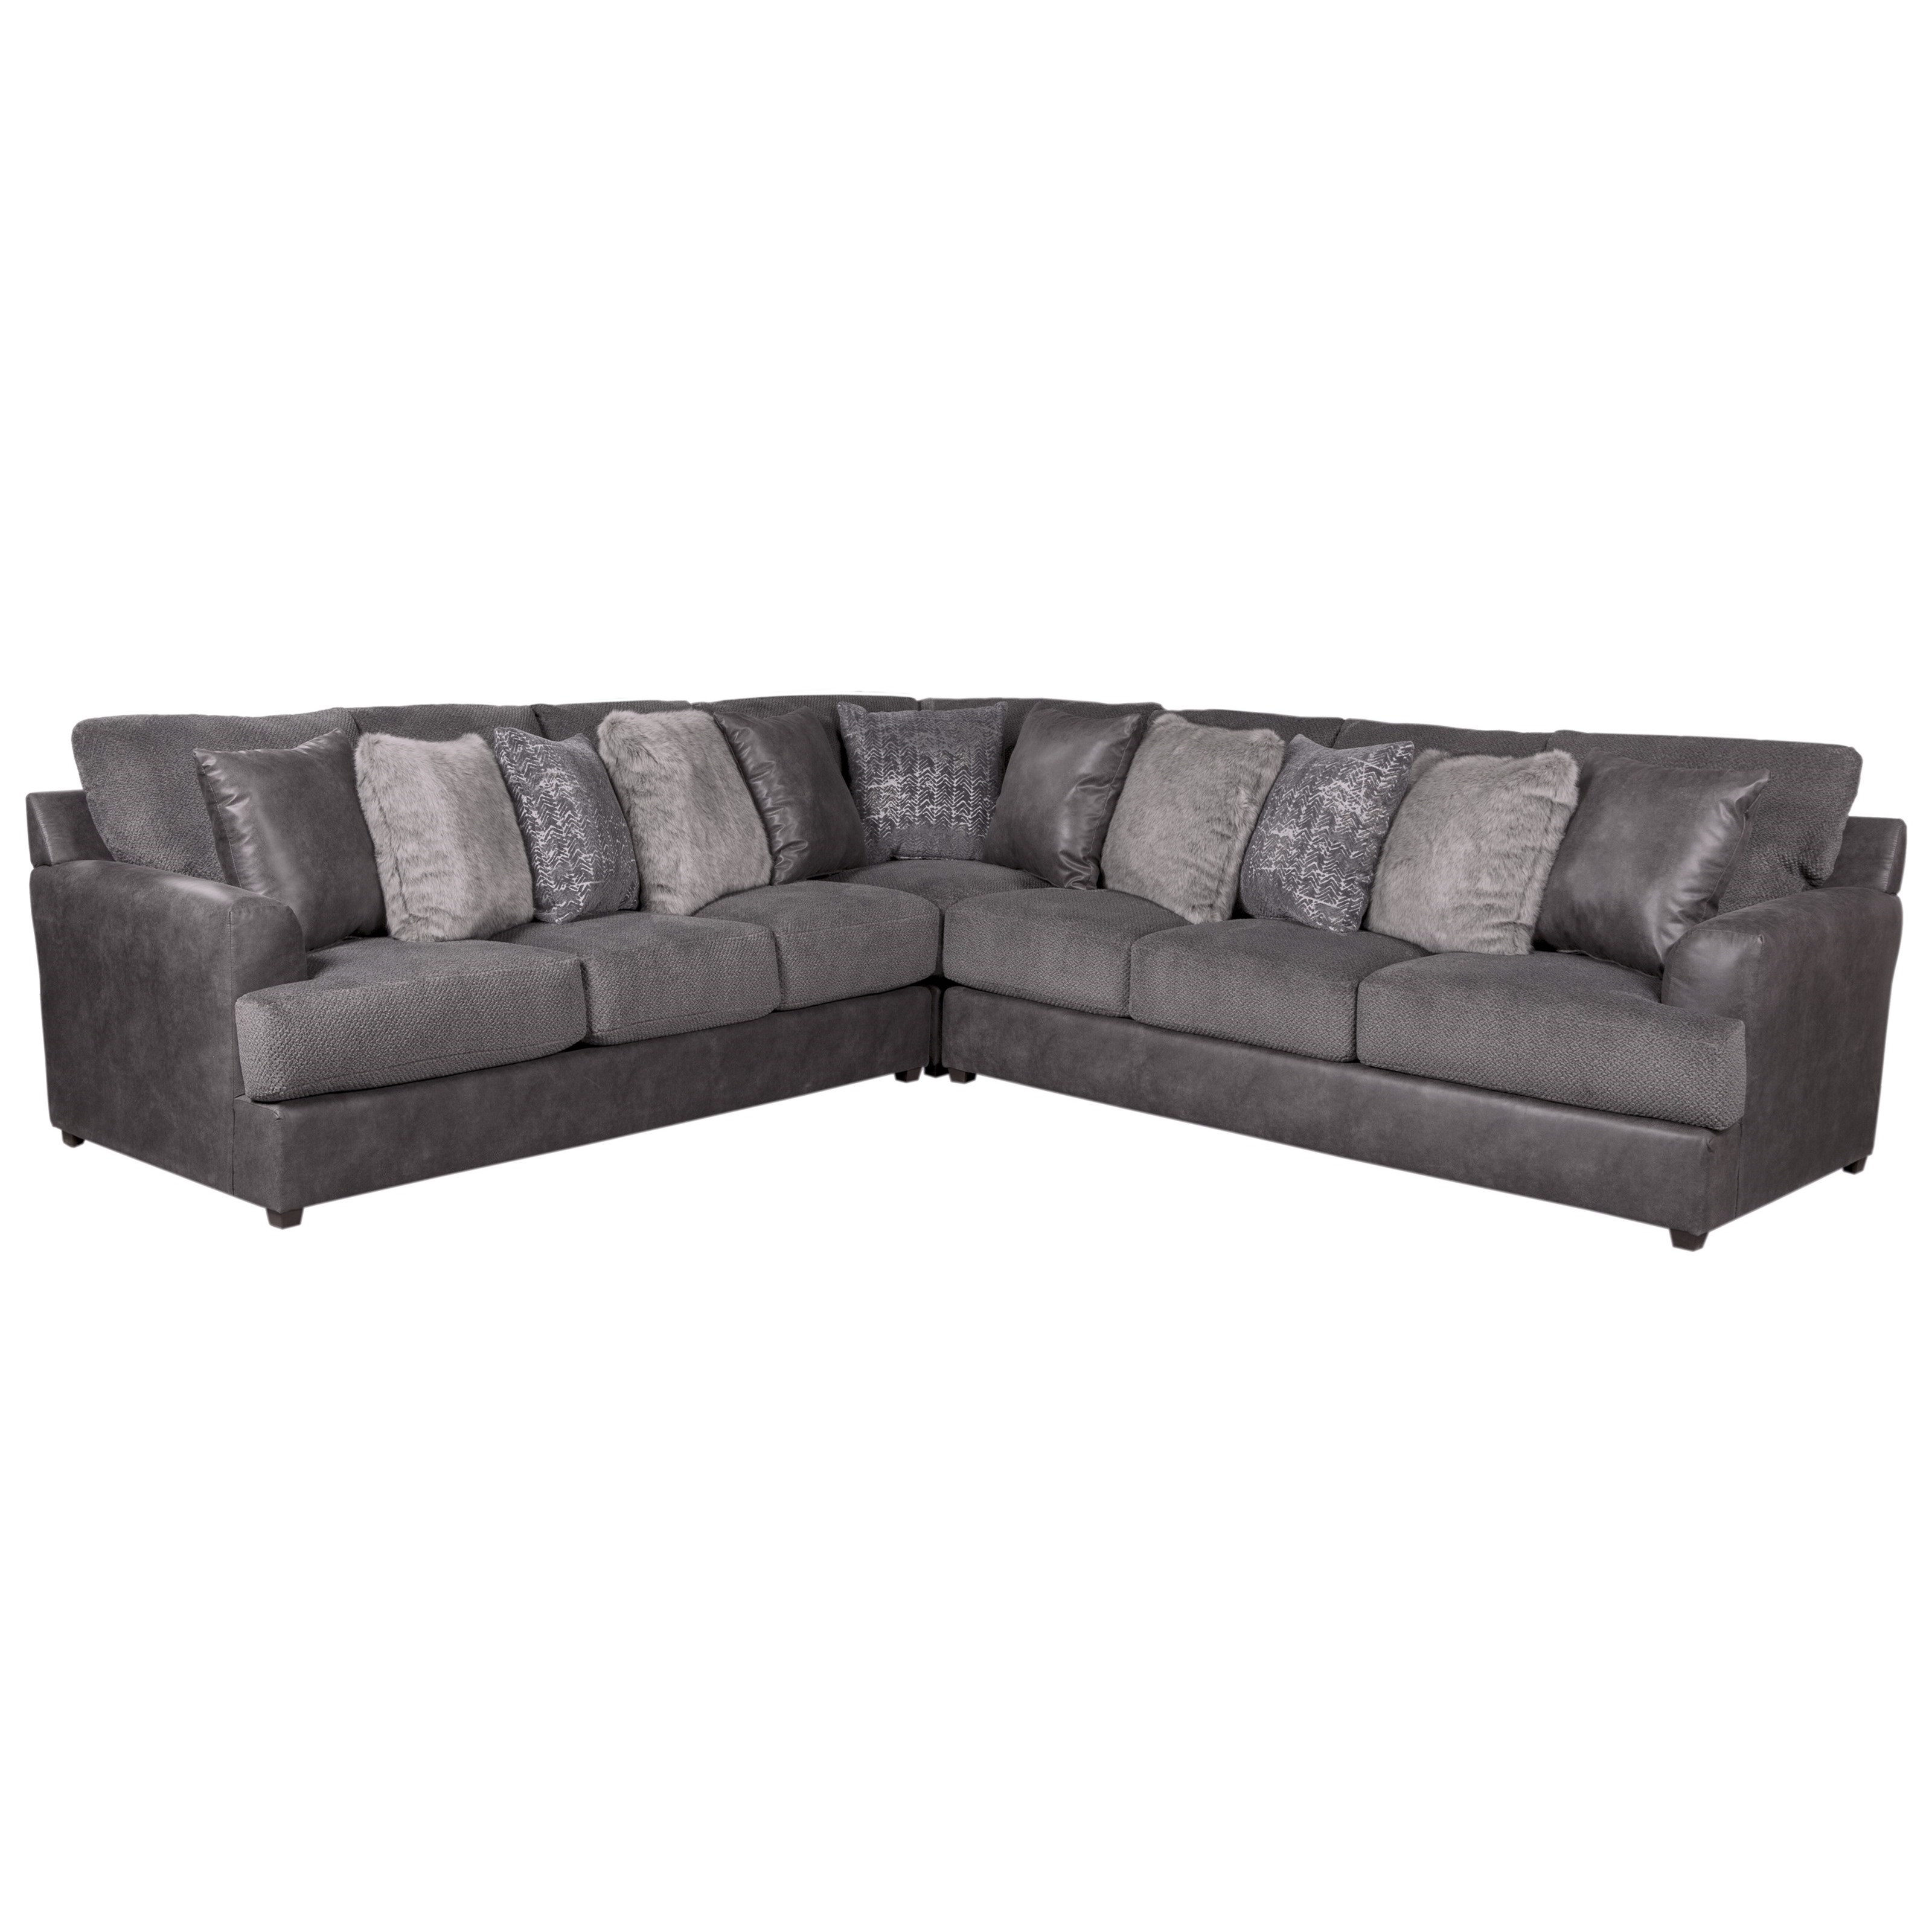 jackson furniture sectional sofas maytex reeves stretch one piece sofa slipcover cortland 3 with track